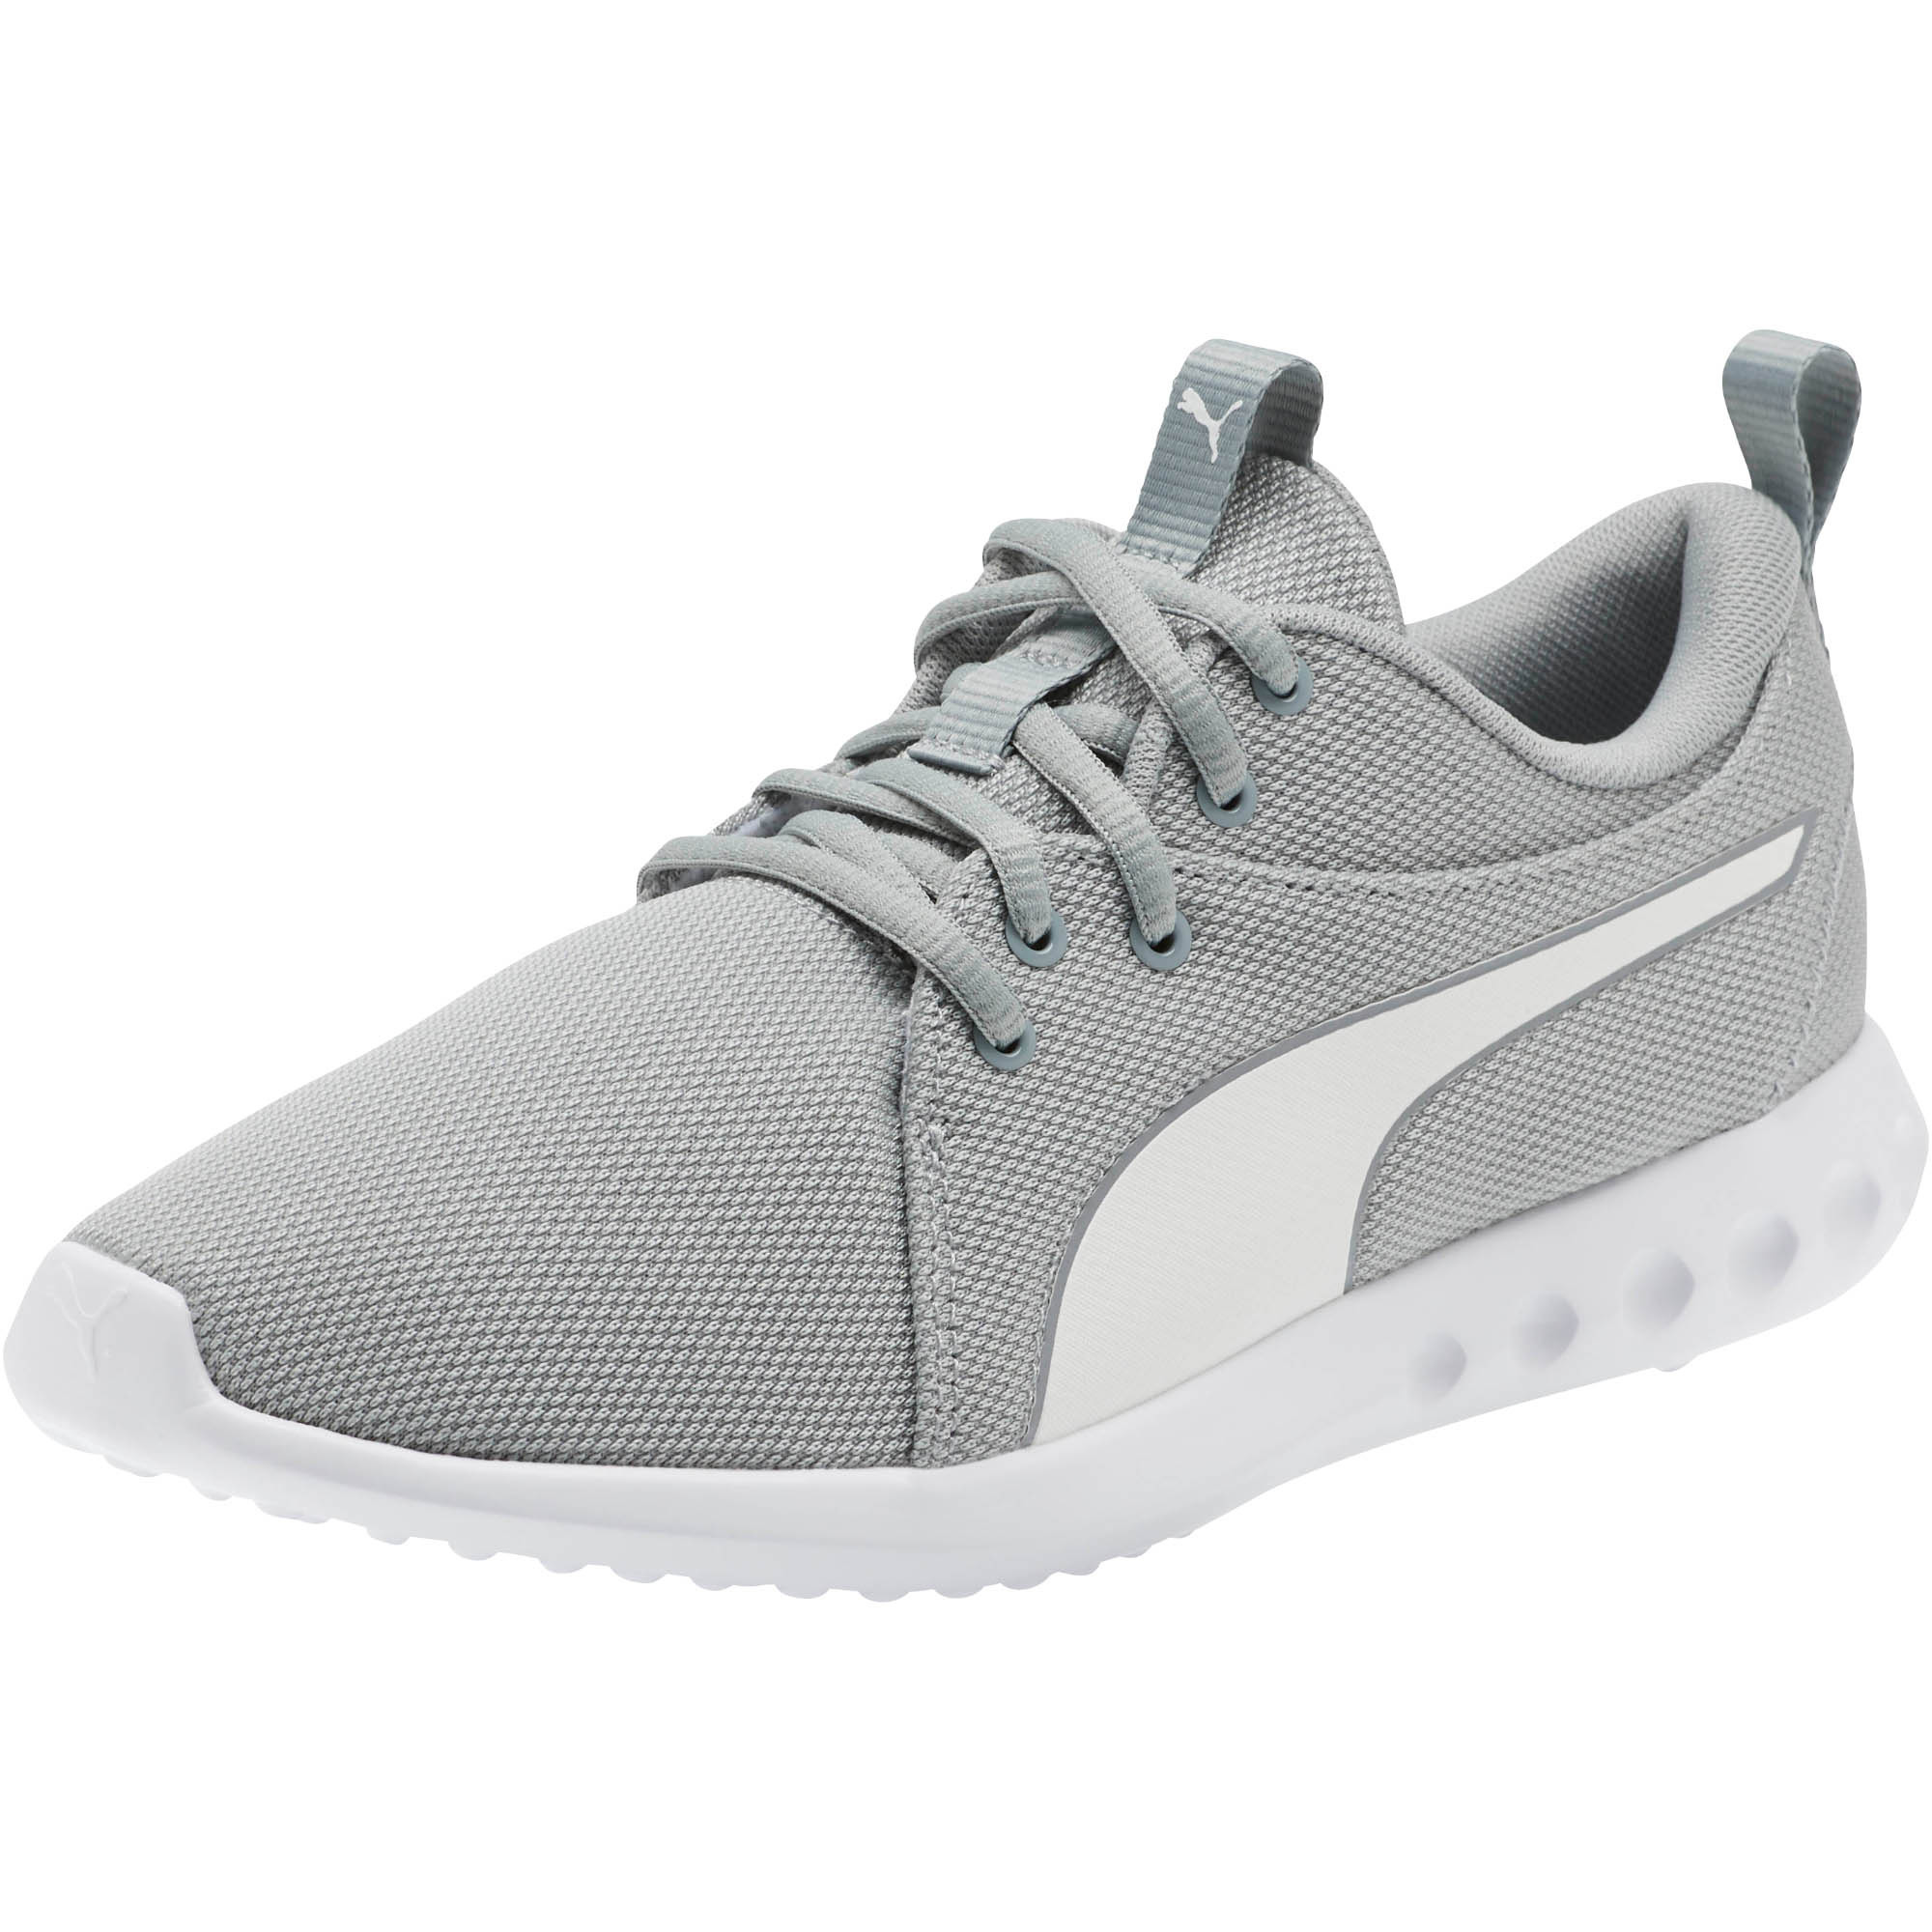 PUMA-Women-039-s-Carson-2-Cosmo-Running-Shoes thumbnail 9